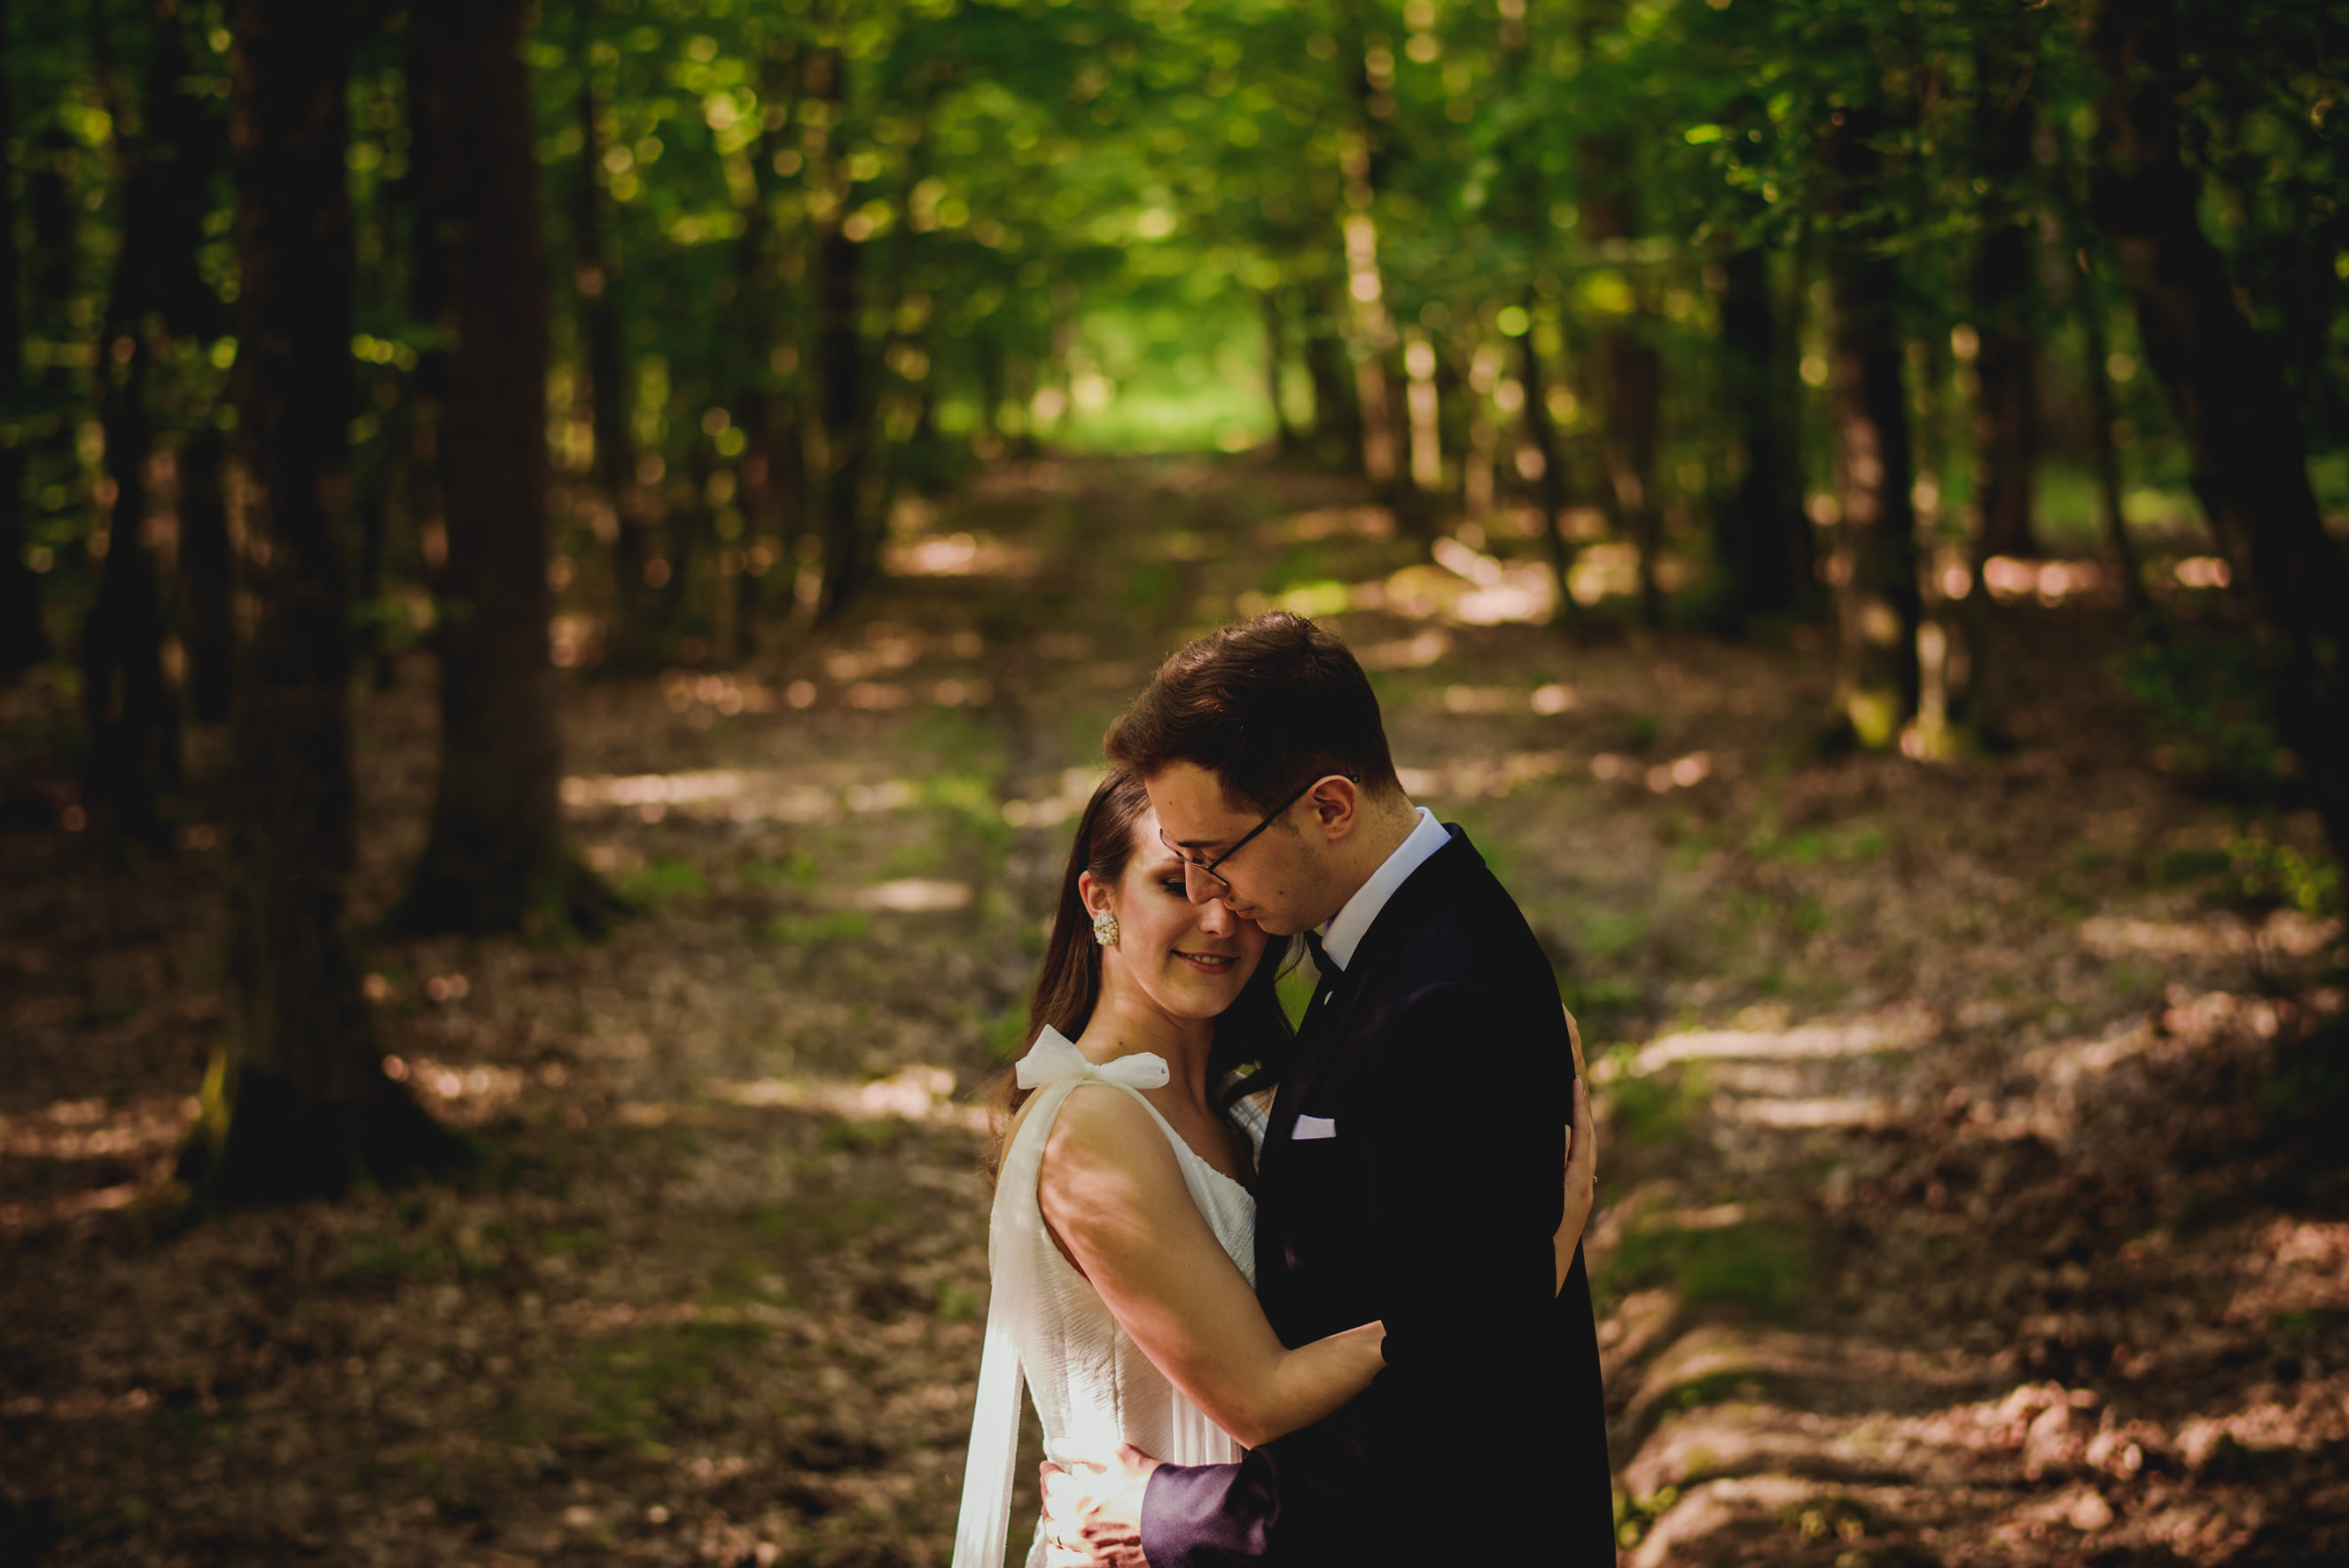 Shot of bride and groom hugging in the forrest path